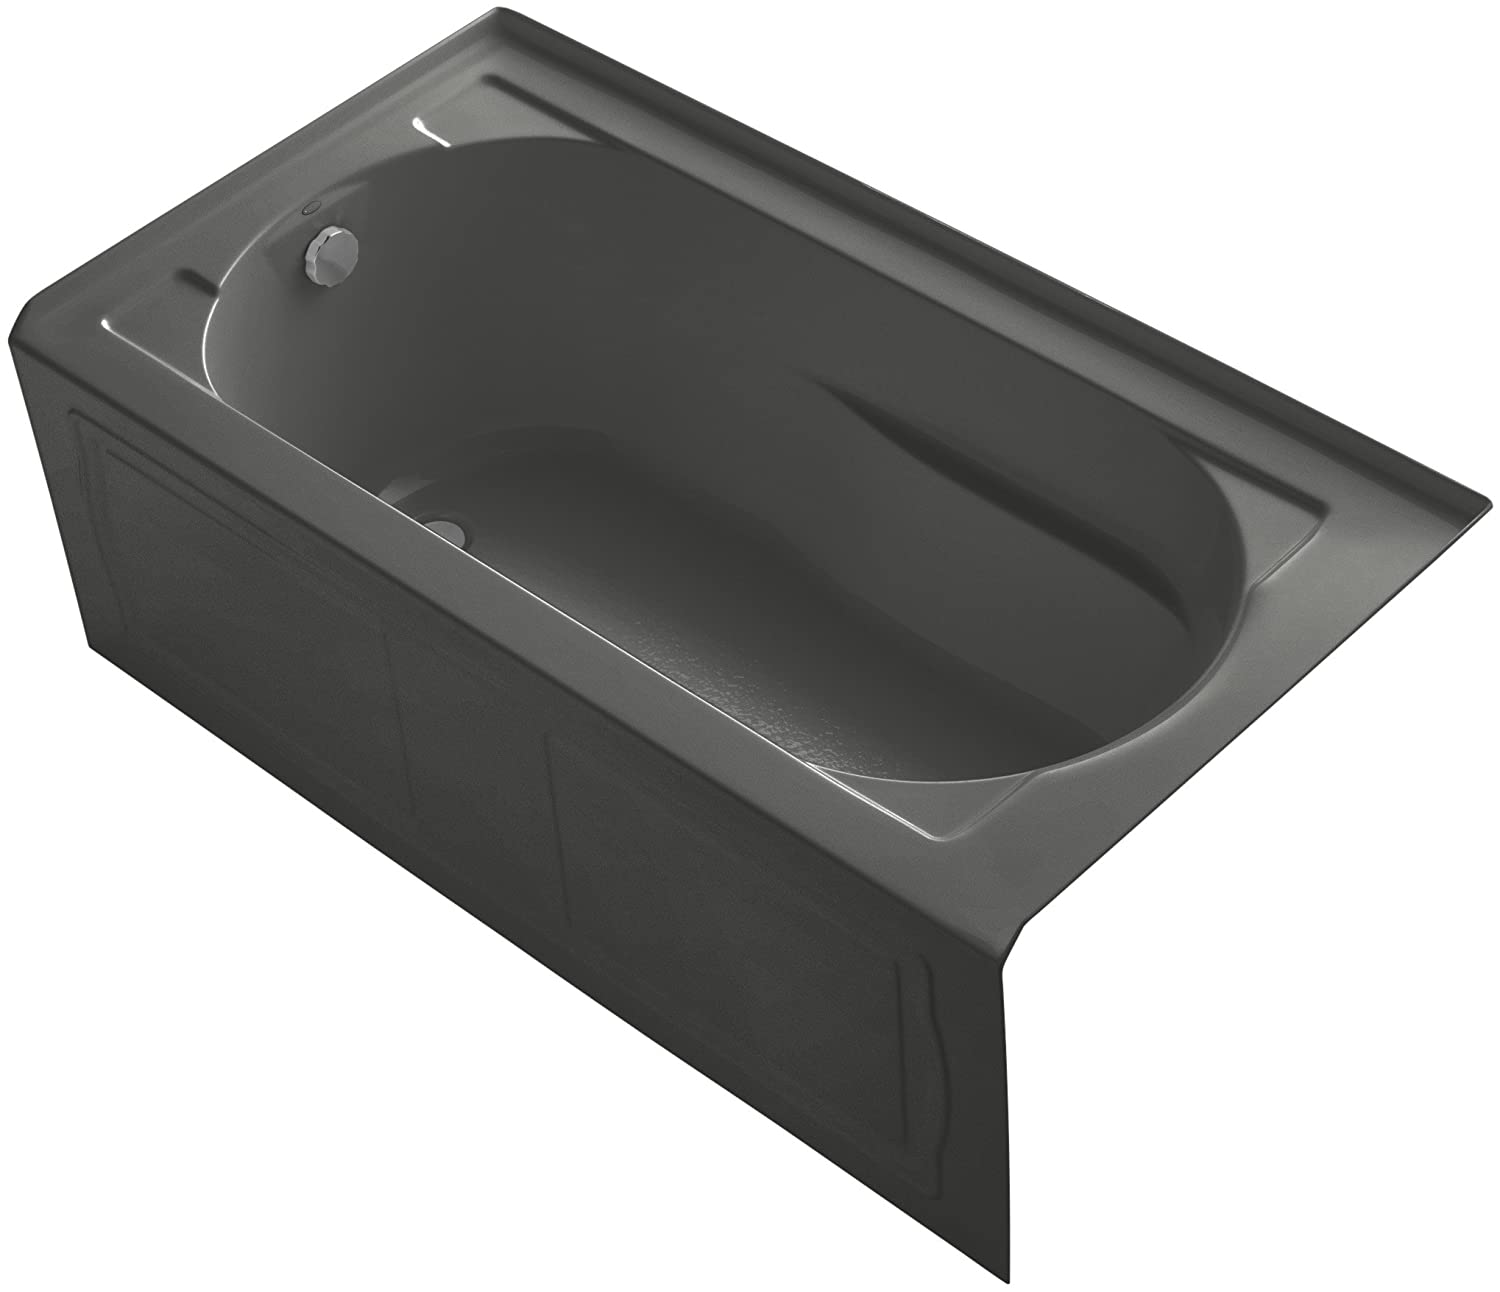 x 32 In Tile Flange Black Alcove Bath with Bask Heated Surface KOHLER K-1184-LAW-7 Devonshire 60 In and Left-Hand Drain Integral Apron